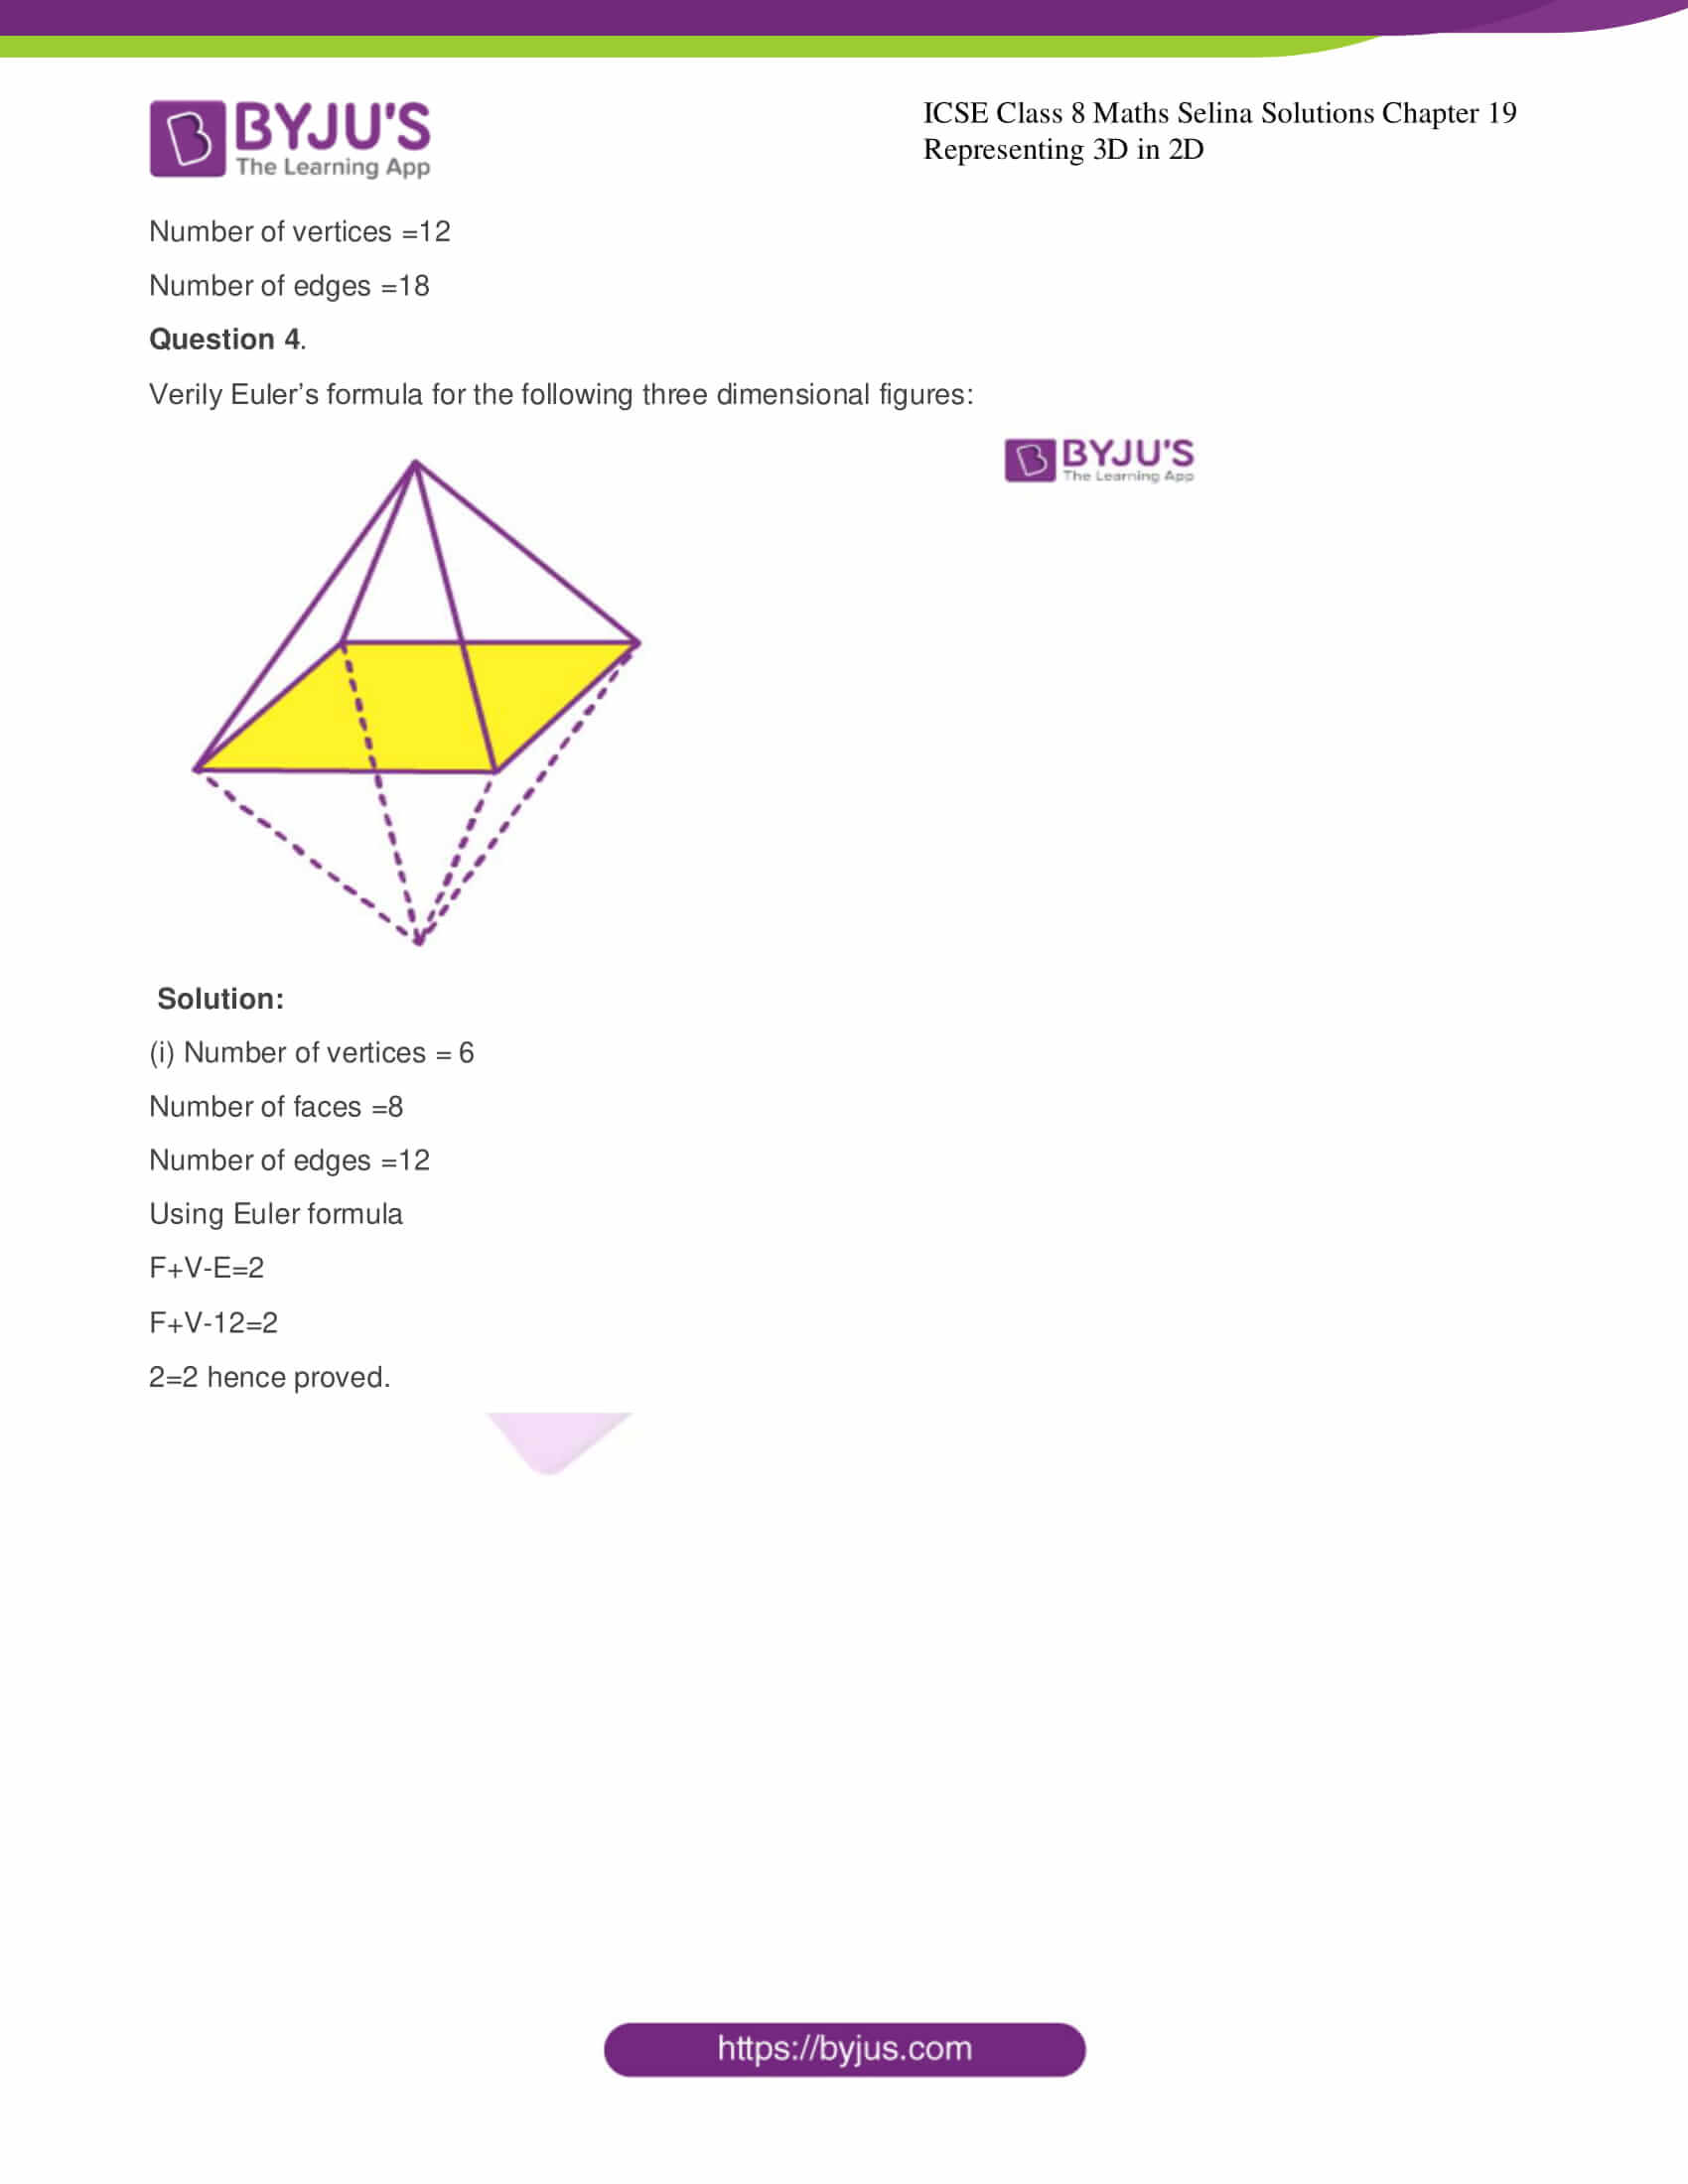 icse class 8 maths may3 selina solutions chapter 19 representing 3d in 2d 2